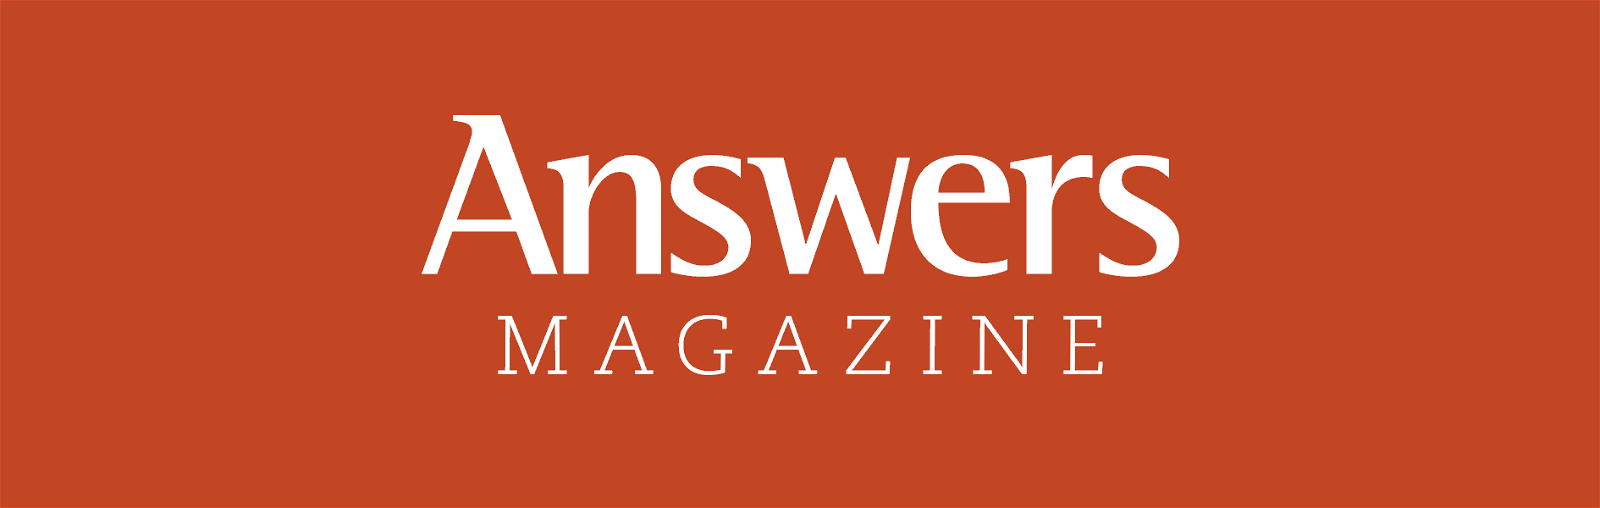 Readers Respond to Answers magazine, January – March 2013